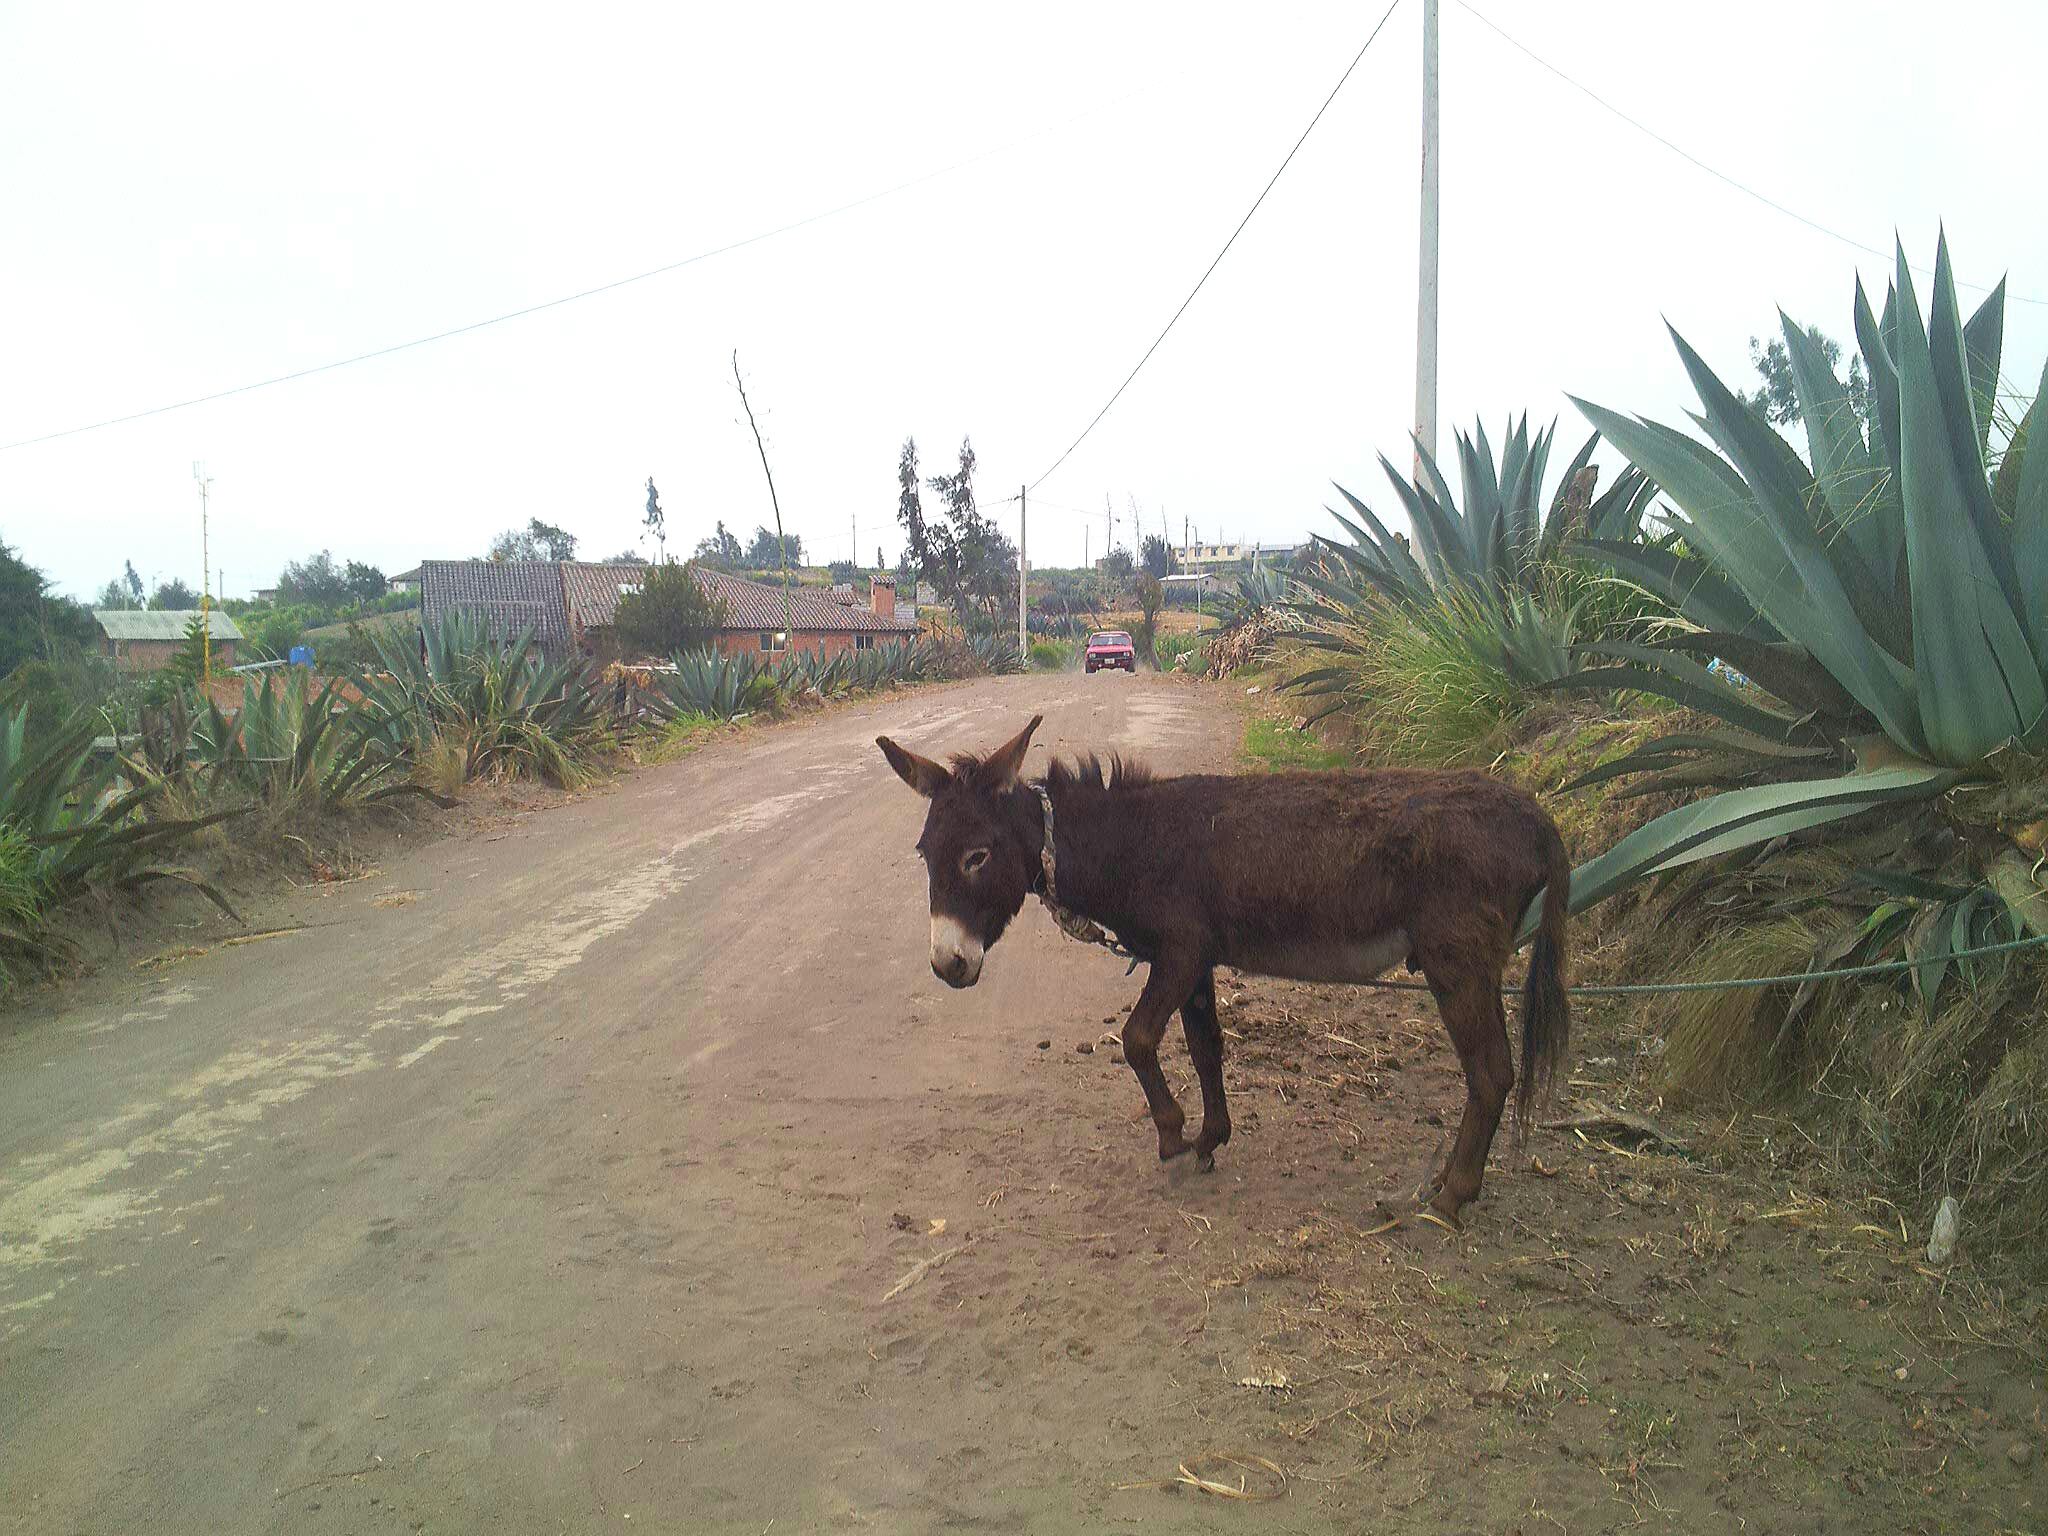 A donkey in the road in Ecuador